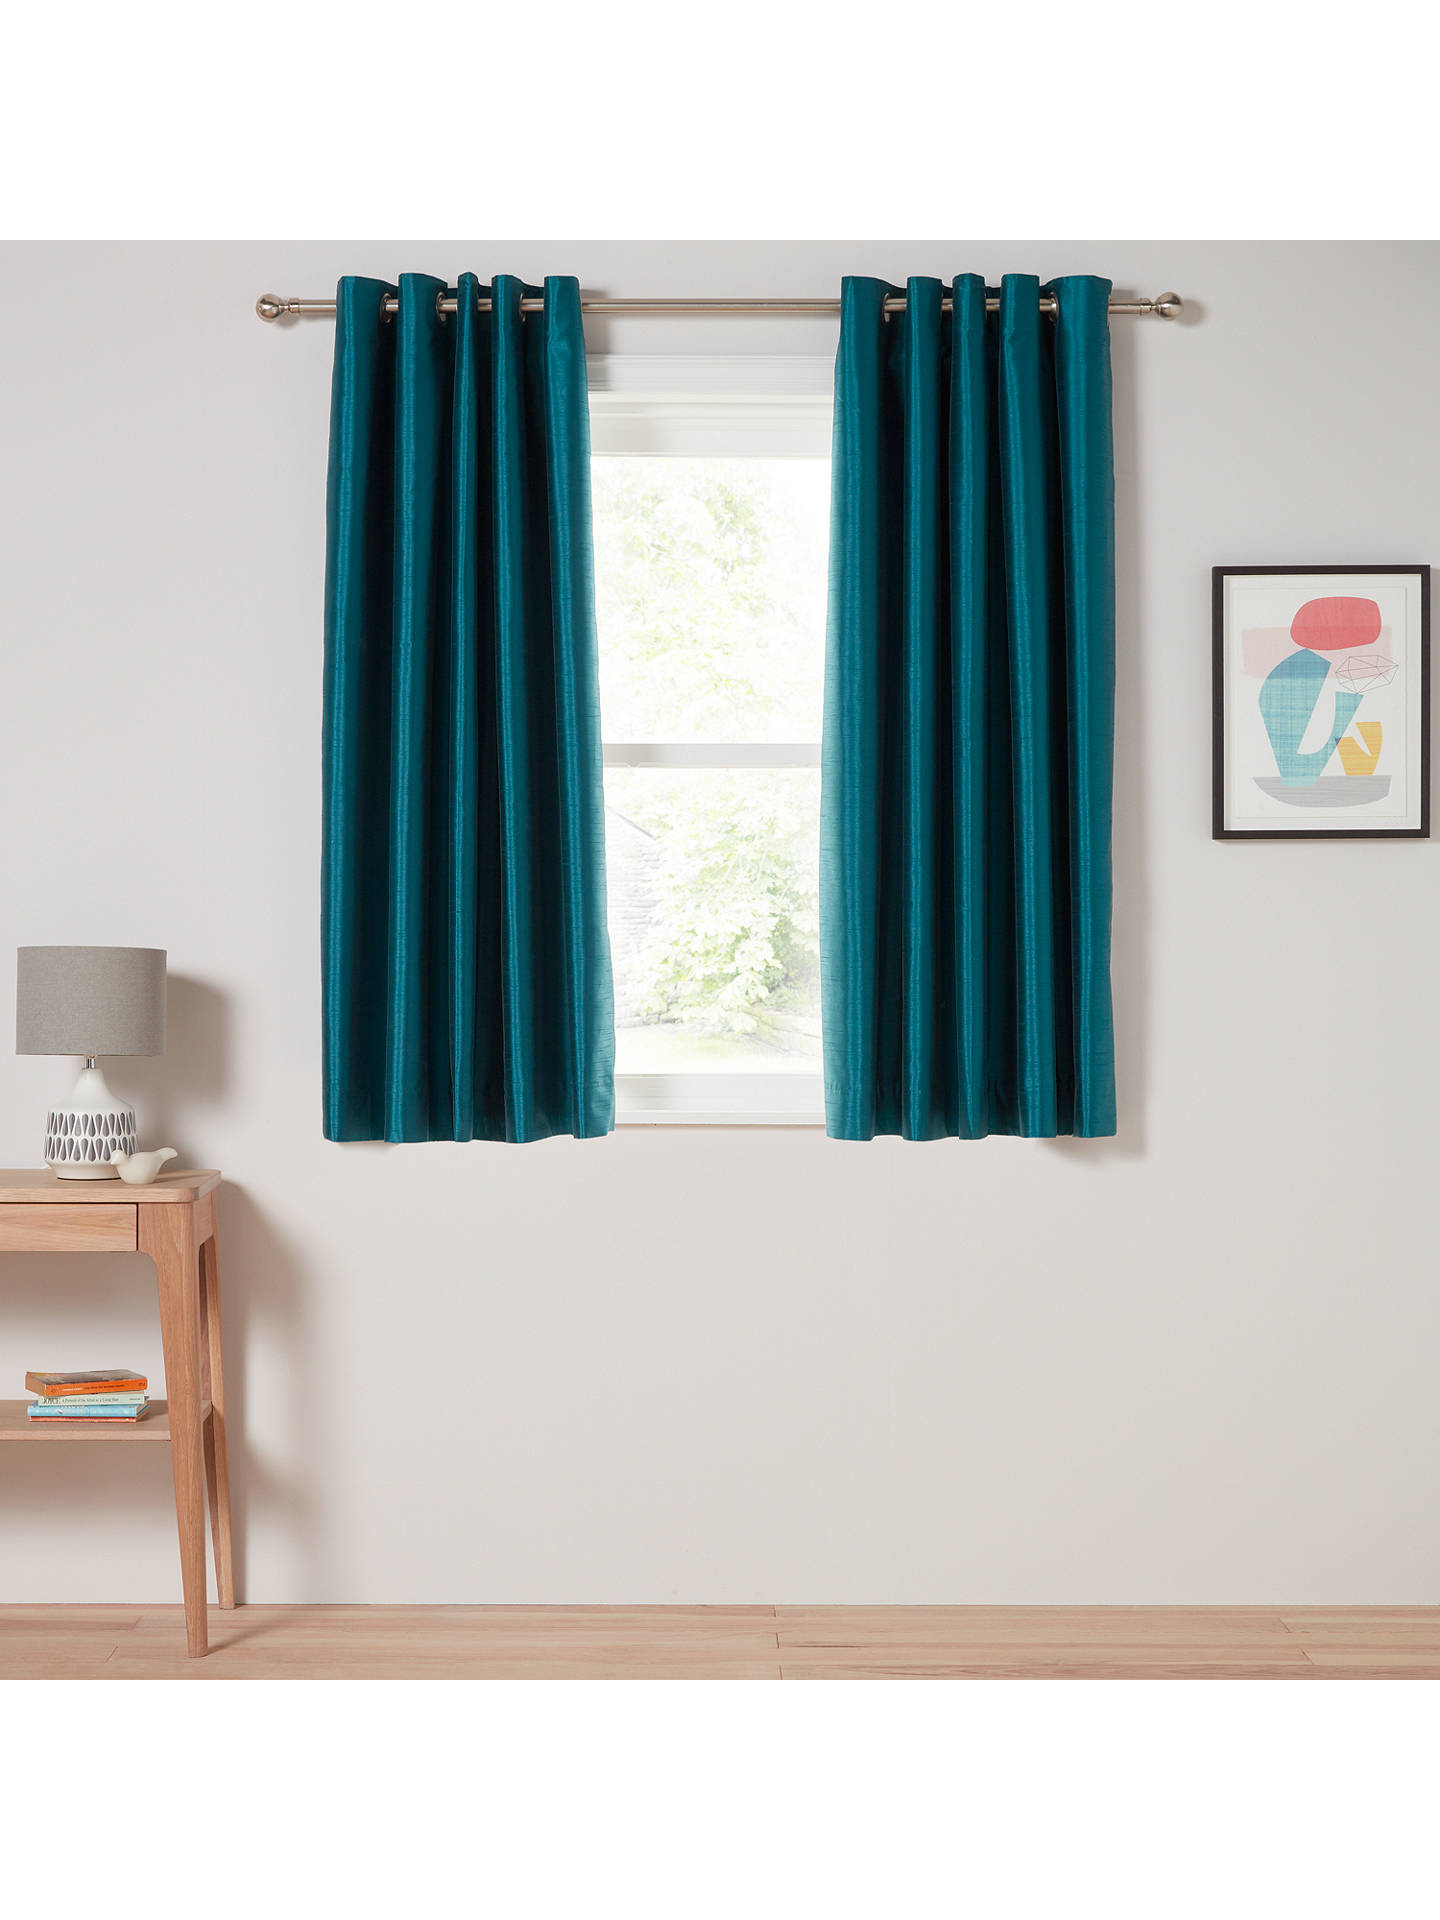 BuyJohn Lewis & Partners Faux Silk Pair Blackout Lined Eyelet Curtains, Teal, W167 x Drop 137cm Online at johnlewis.com